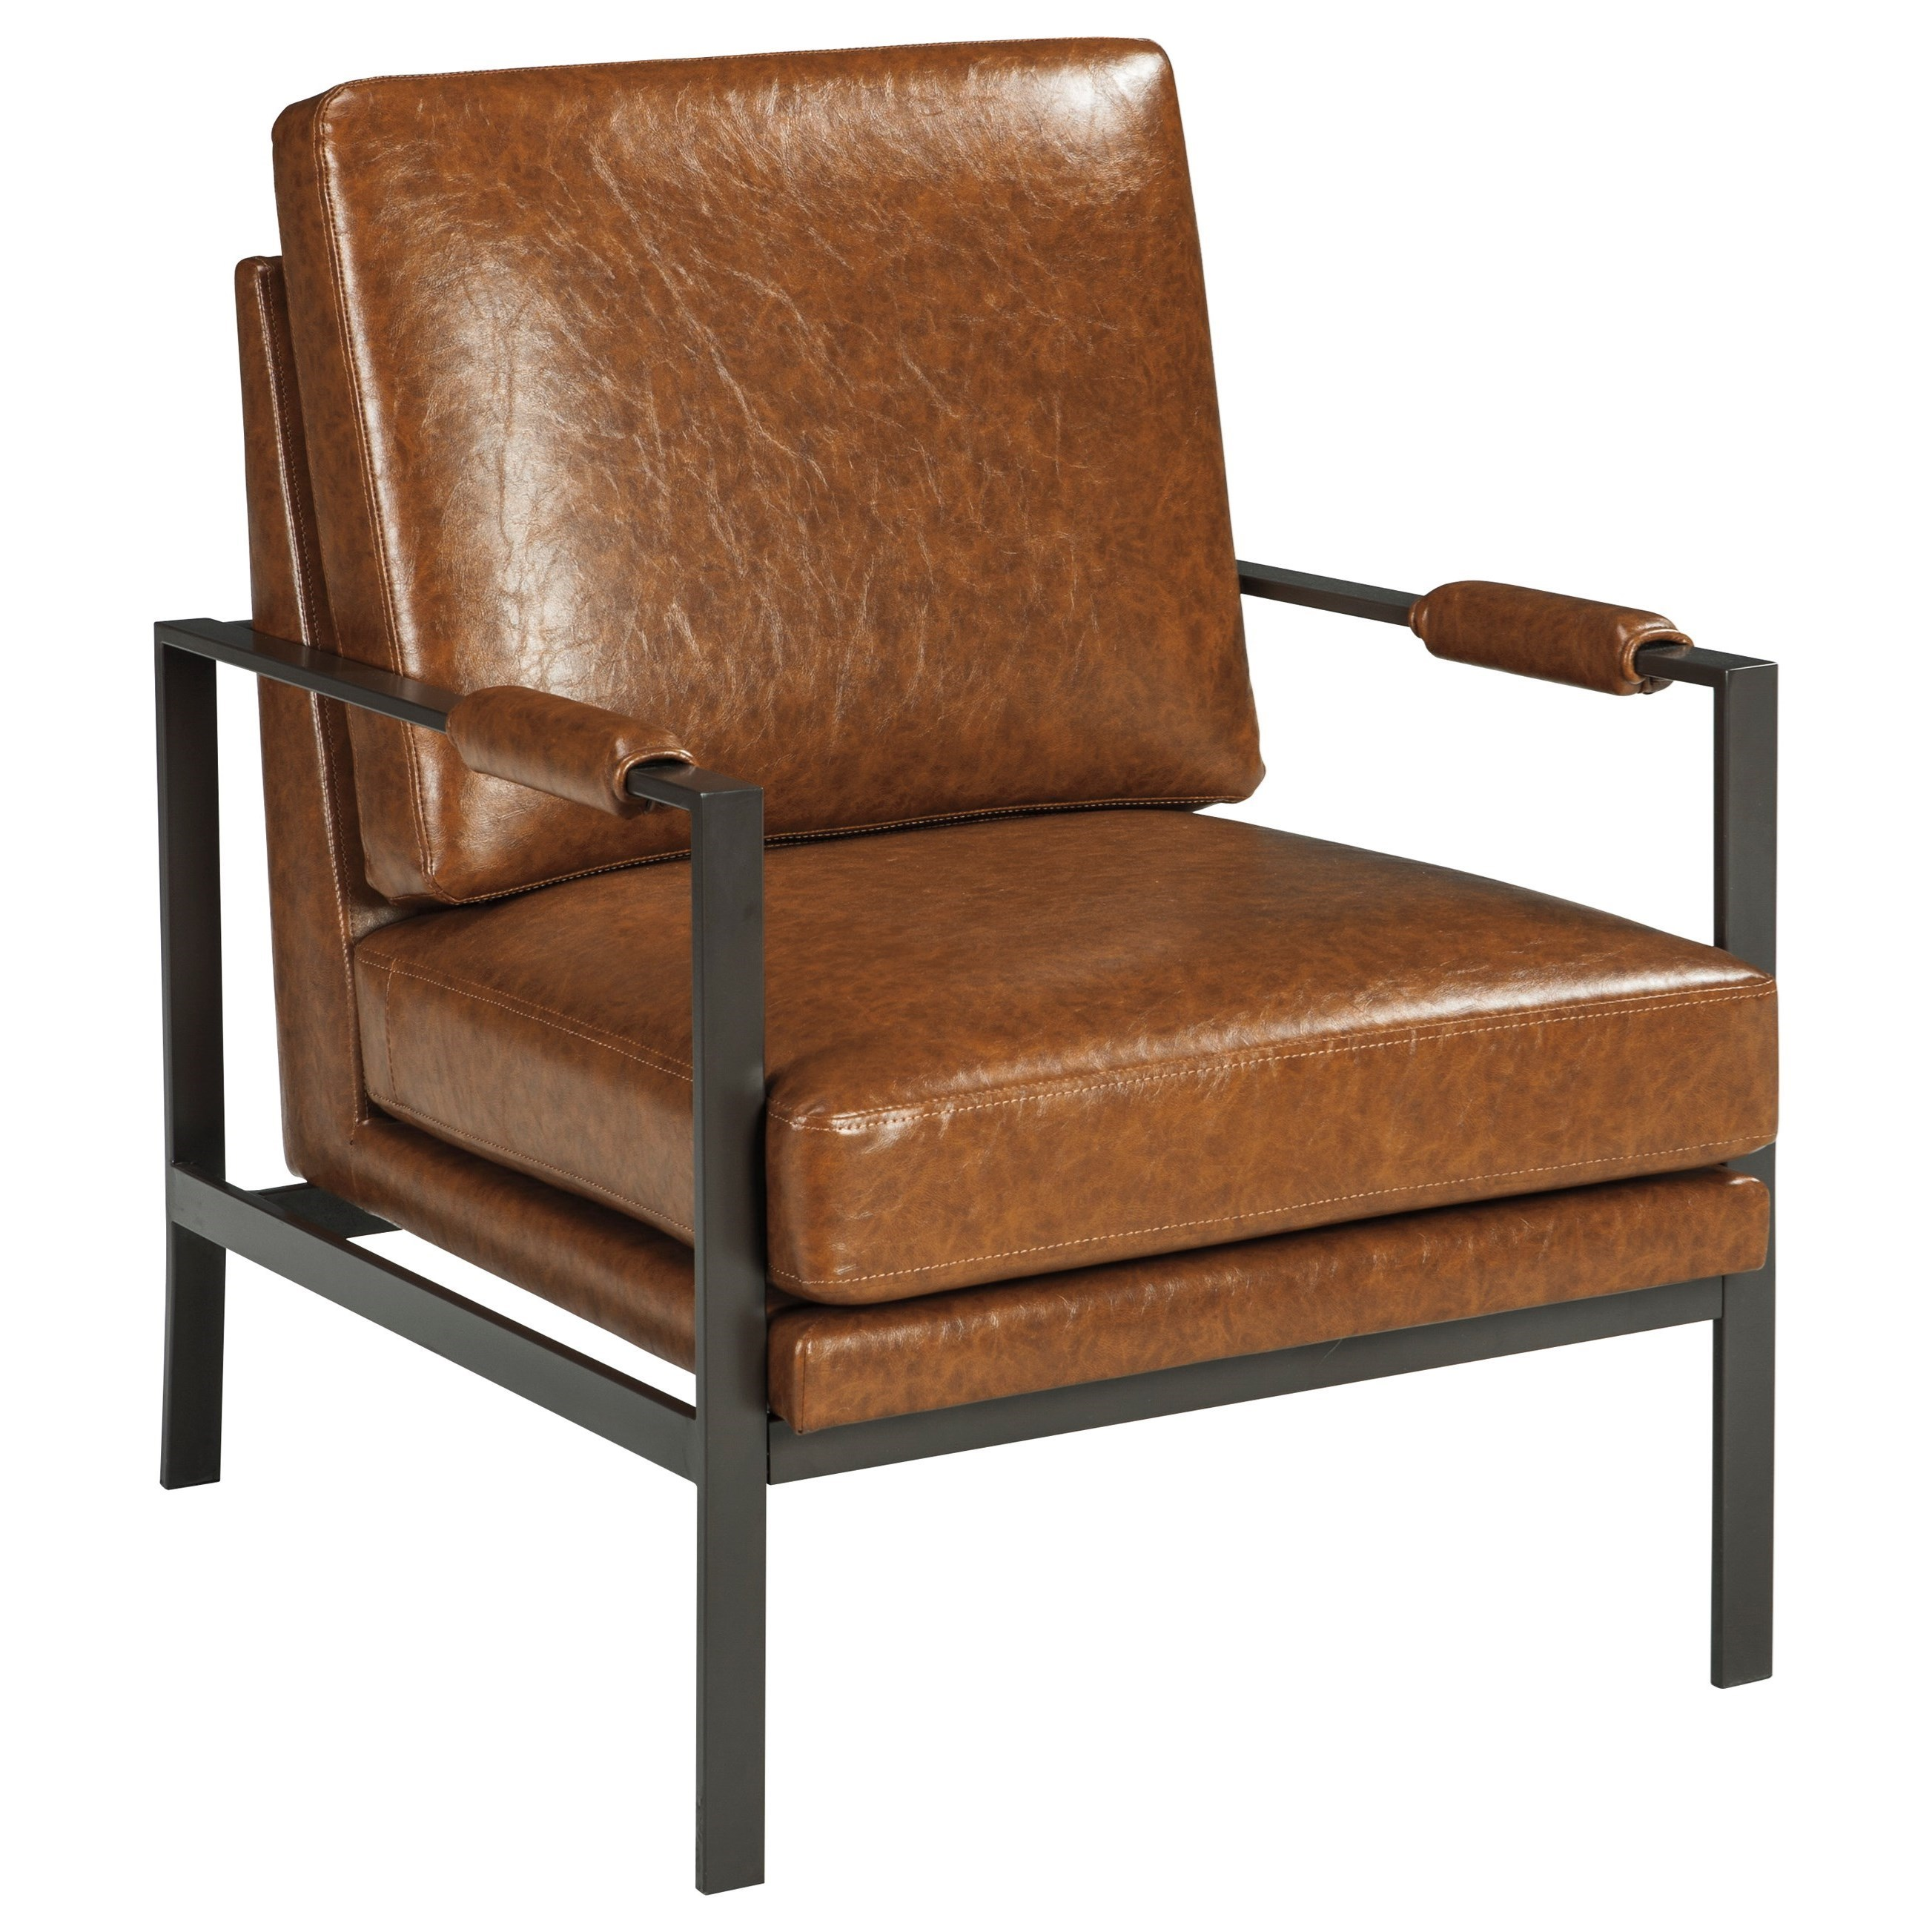 Accent Arm Chairs Peacemaker Dark Bronze Finish Metal Arm Accent Chair With Light Brown Faux Leather By Signature Design By Ashley At Value City Furniture